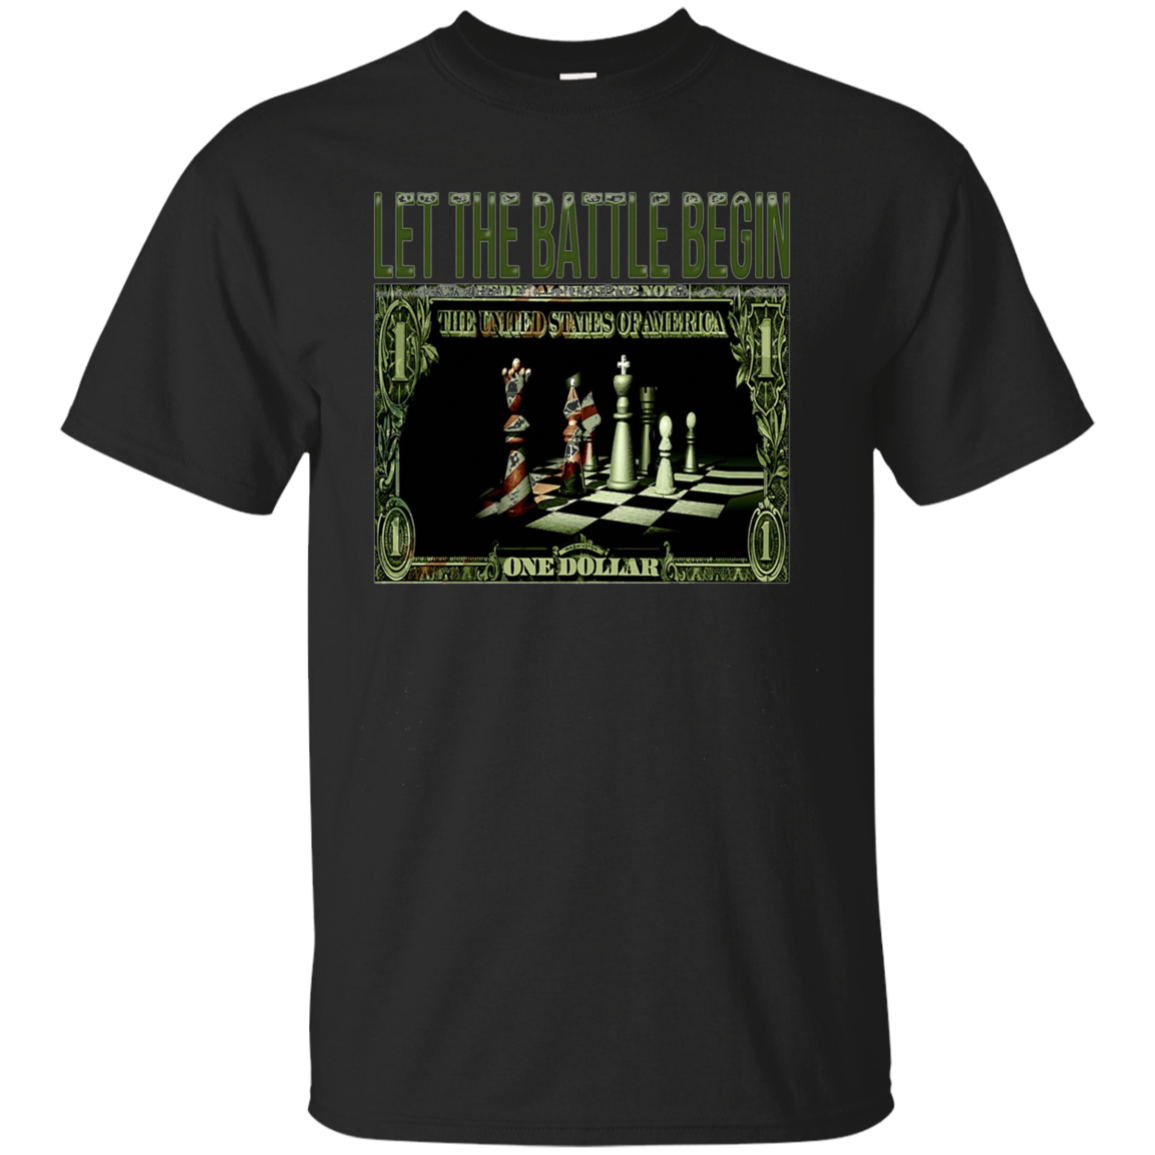 Let The Battle Begin-Funny Men Women Kids Chess T-Shirt